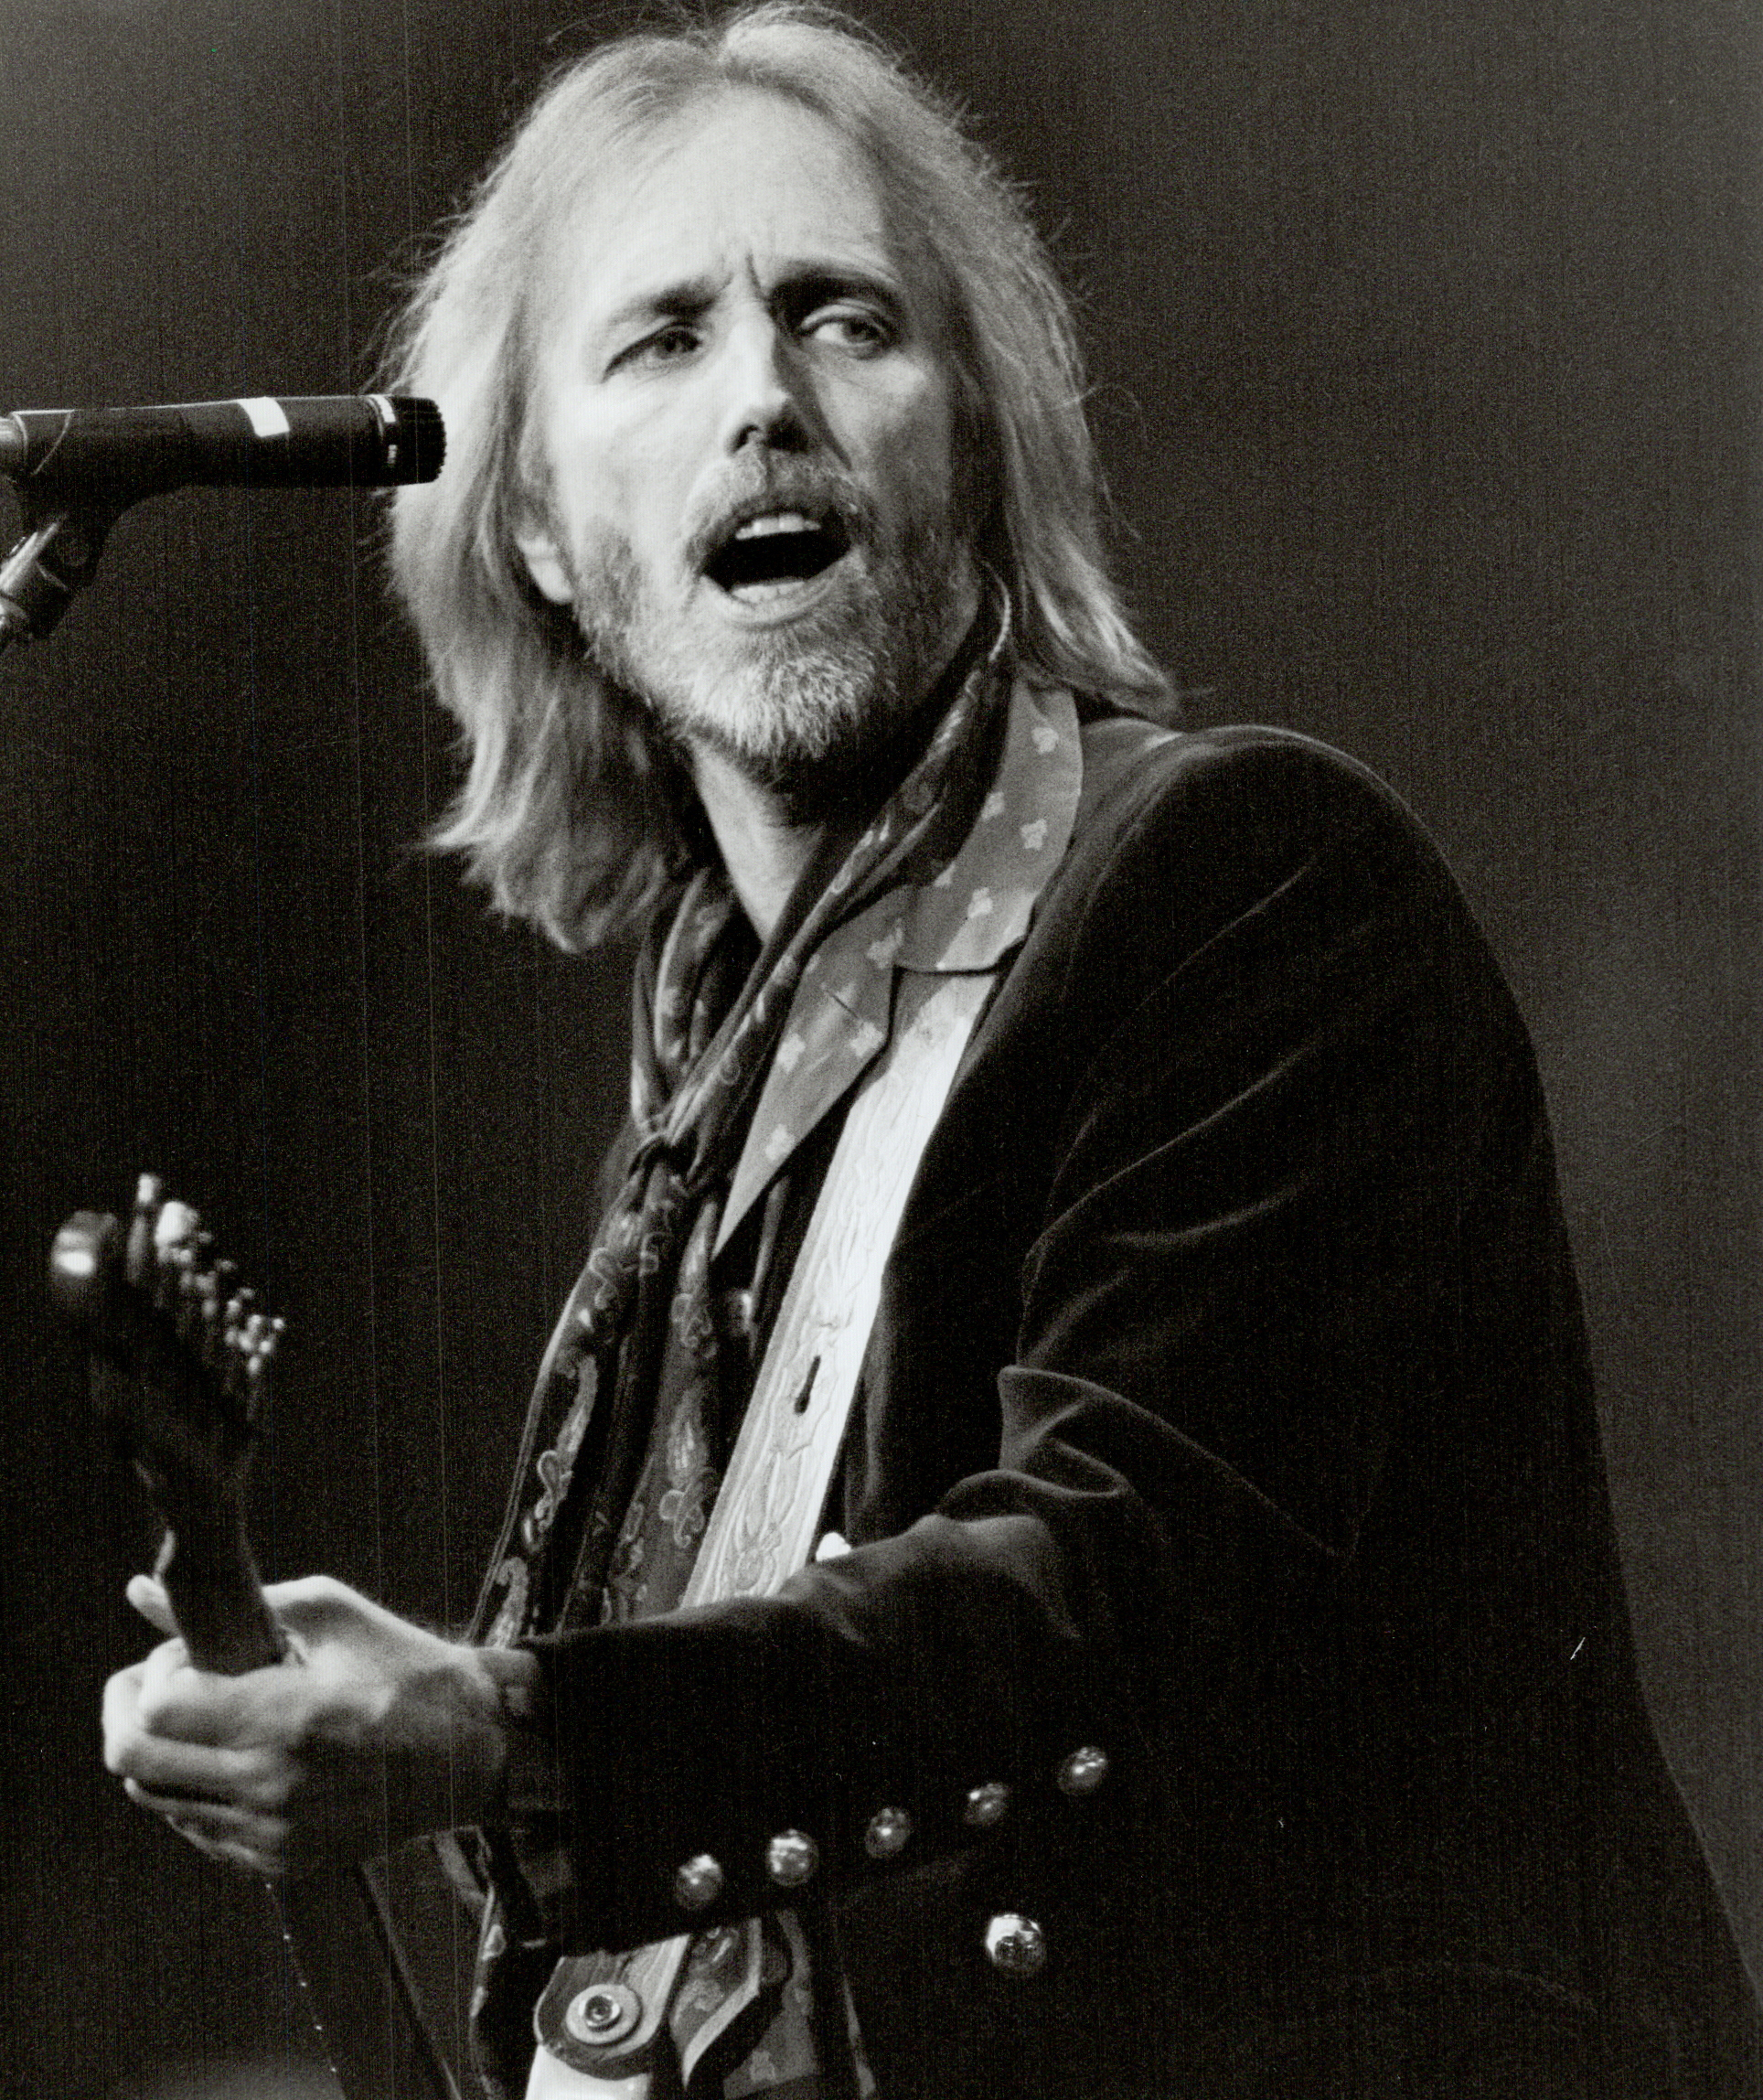 Tom Petty On The Road This Is How It Feels Rolling Stone